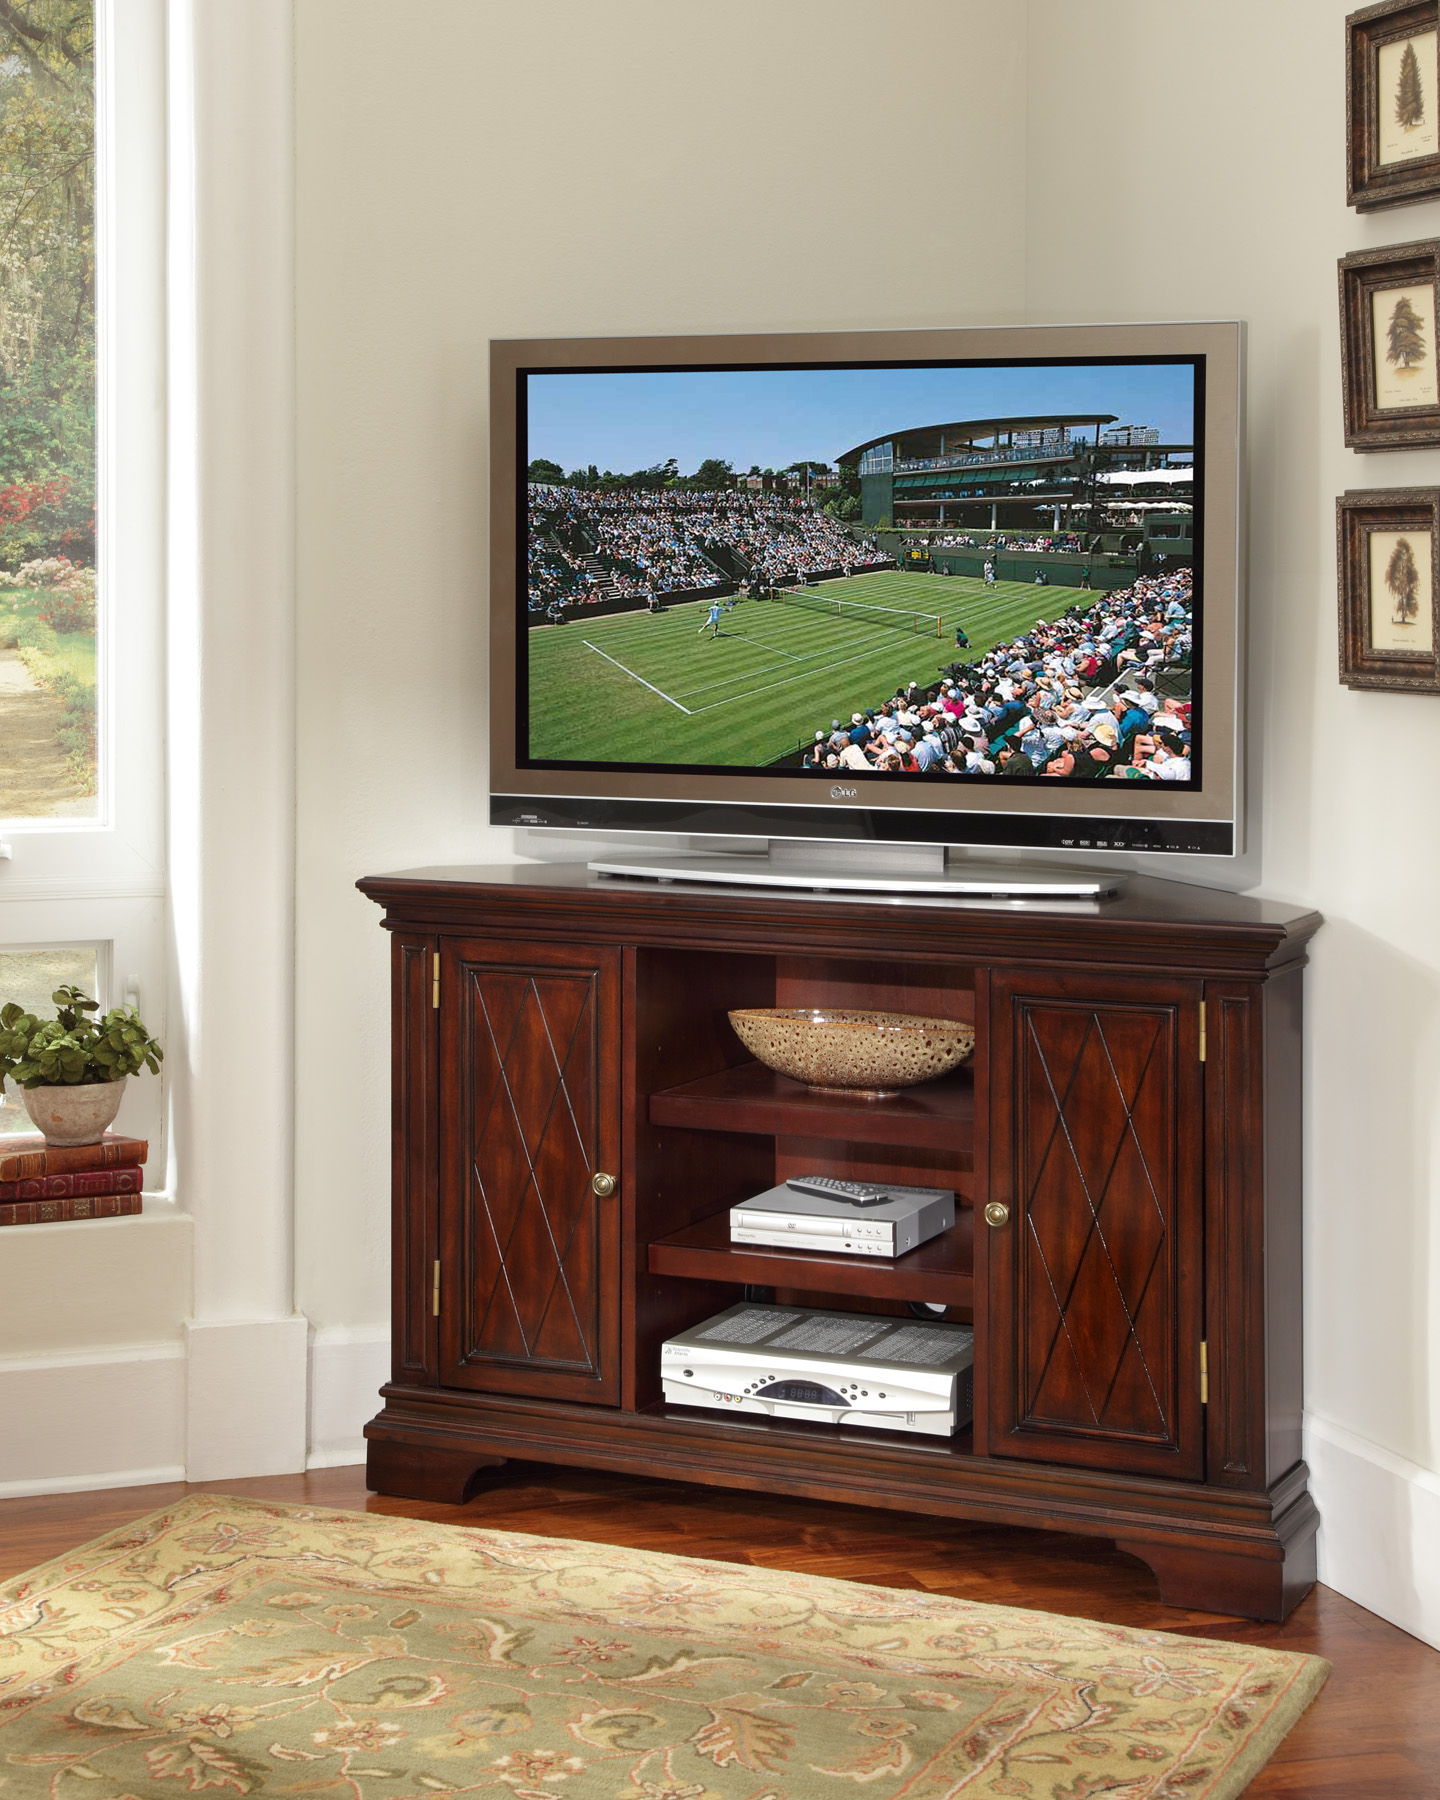 Corner Unit Entertainment Centers HomesFeed